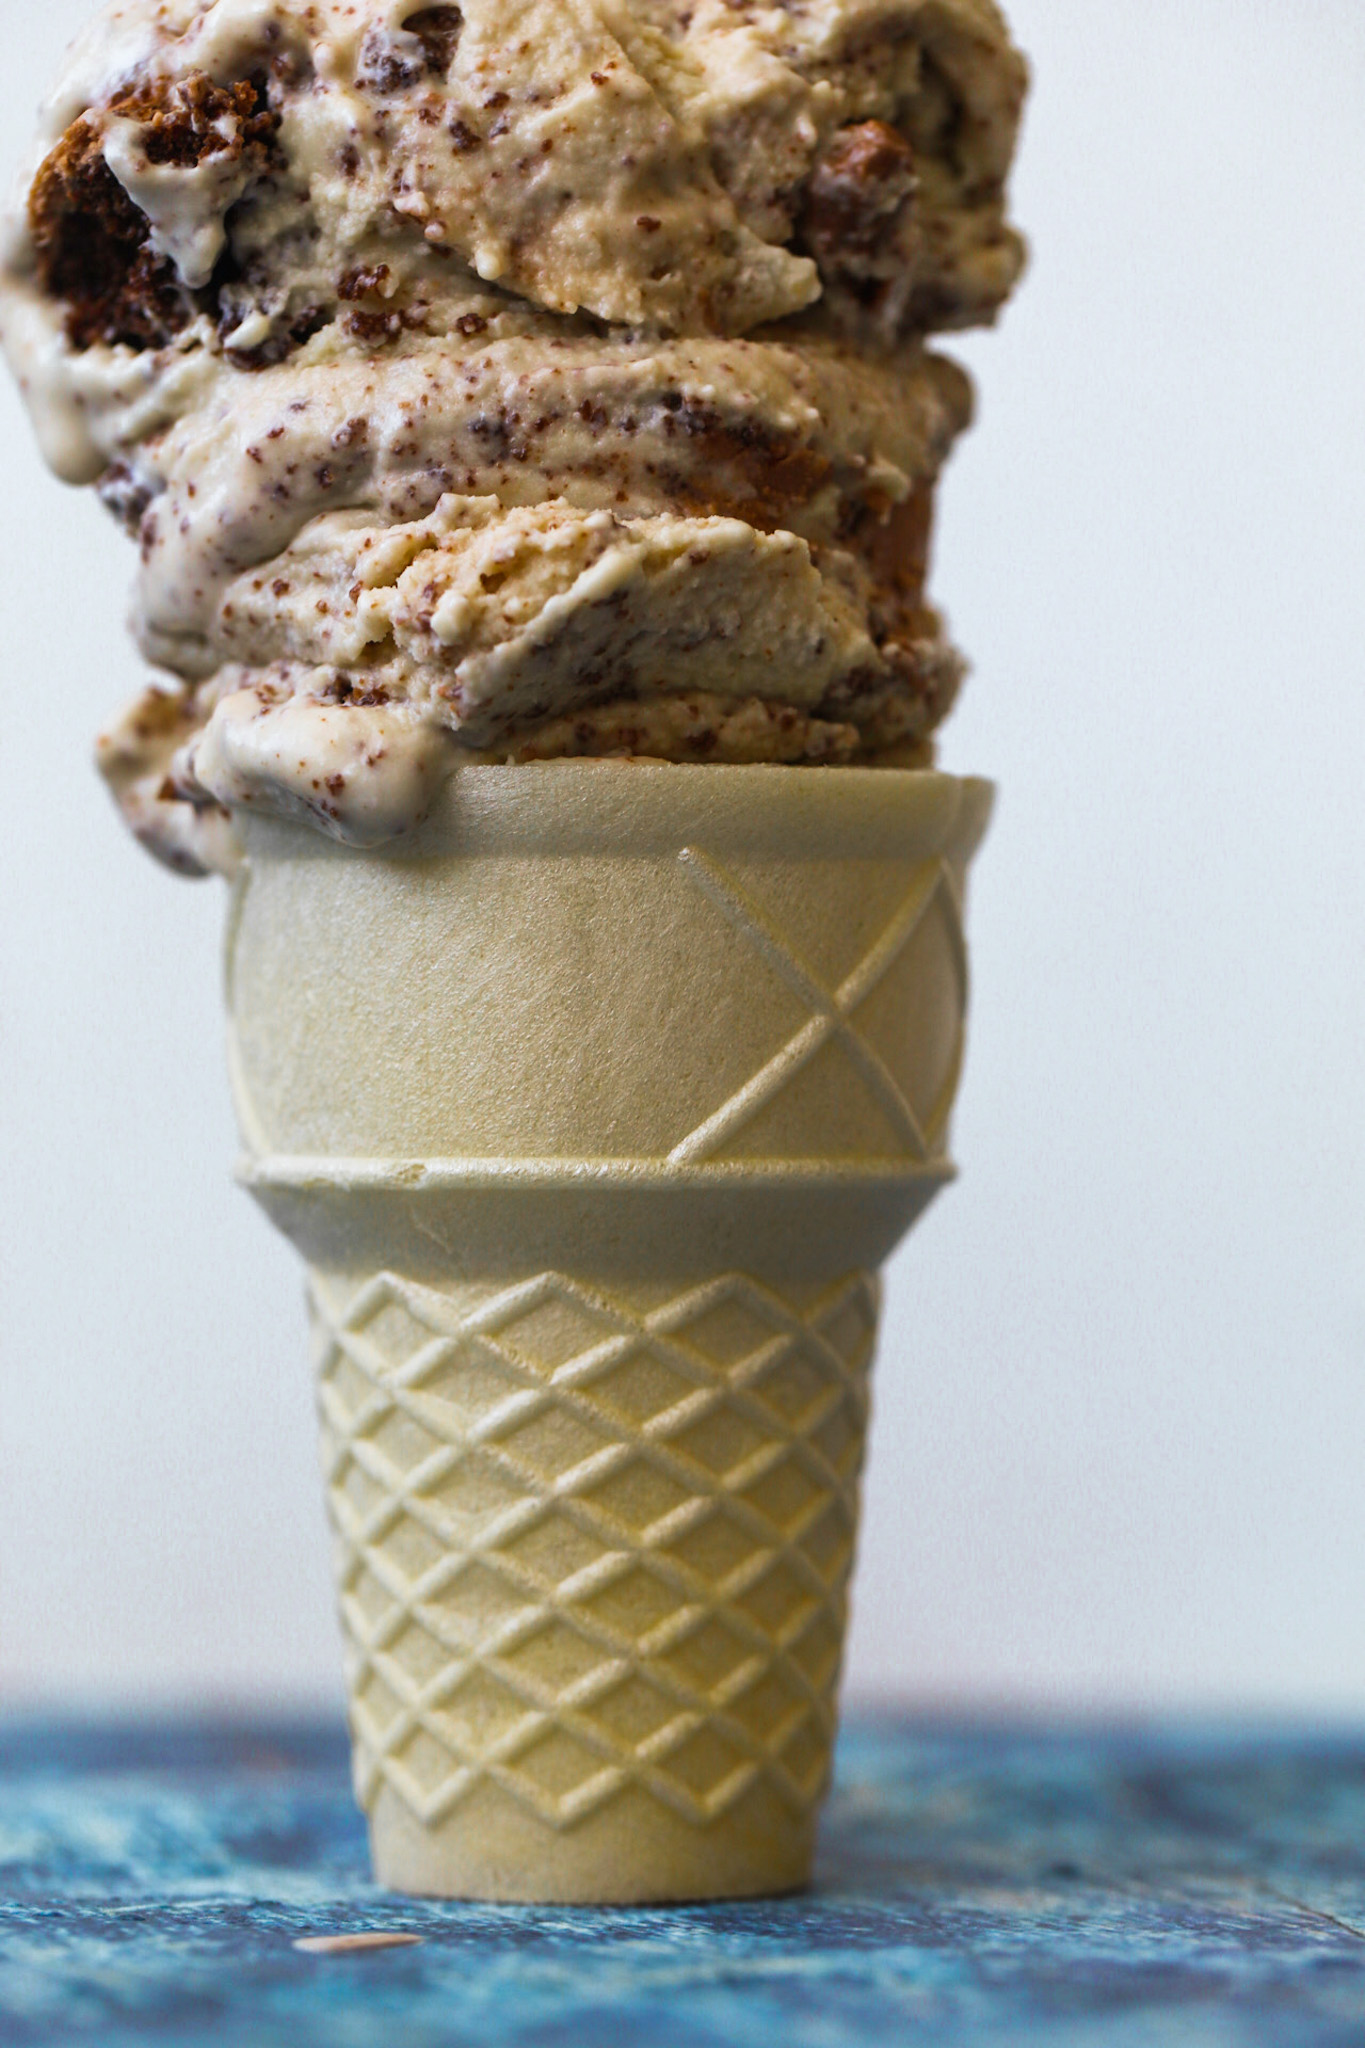 Cashew Ice Cream scooped on cone